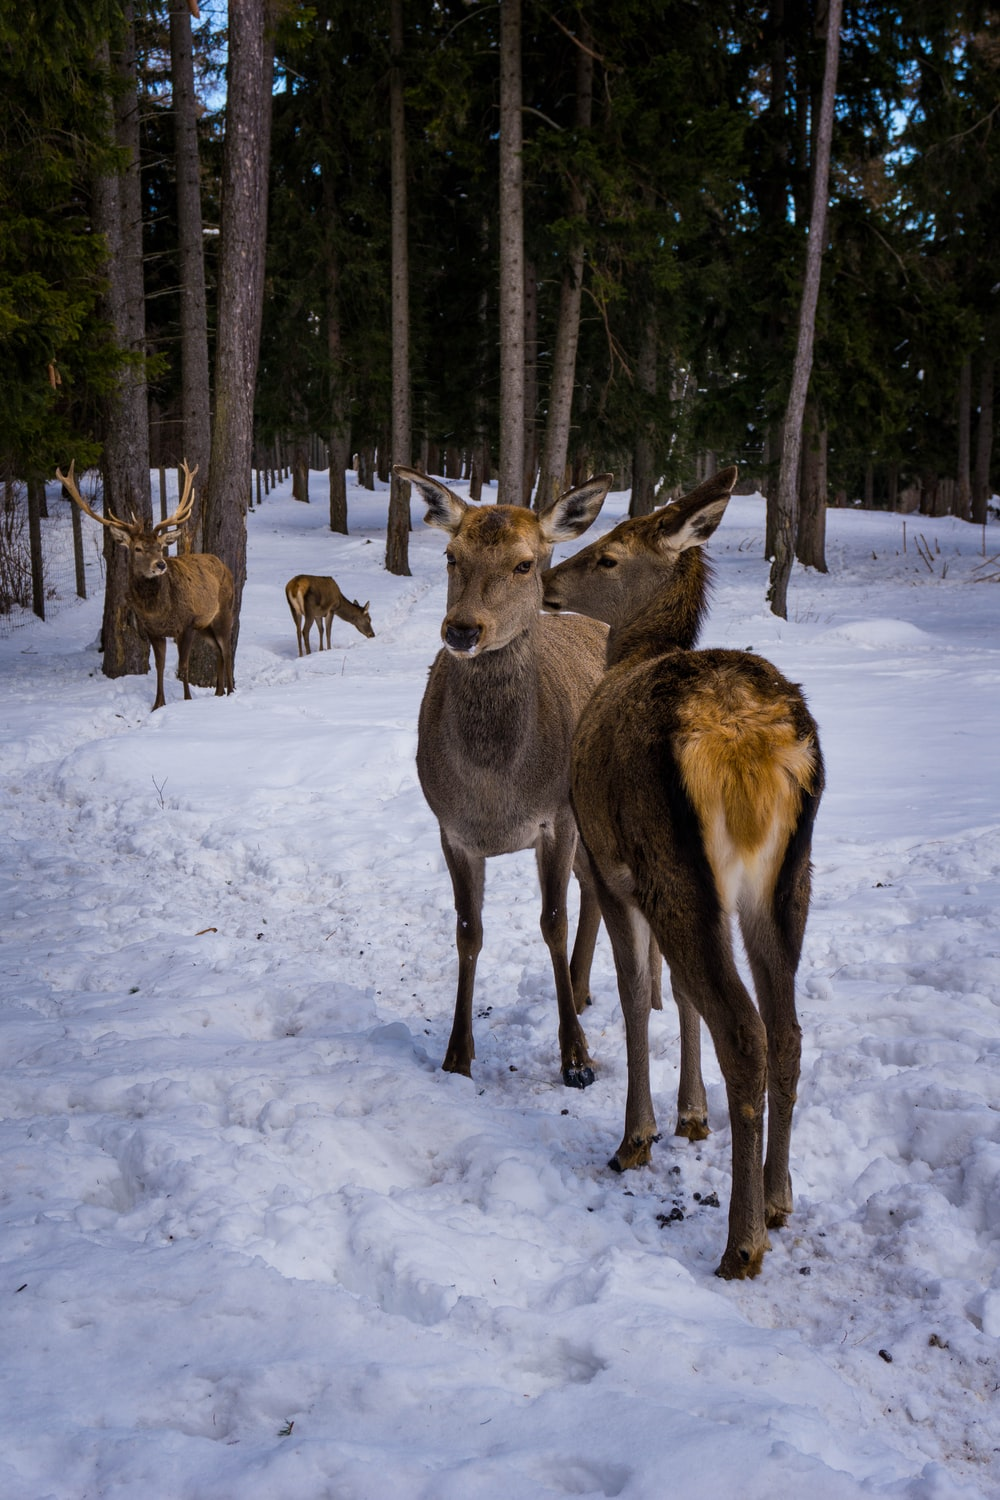 herd of deer on snow covered ground during daytime